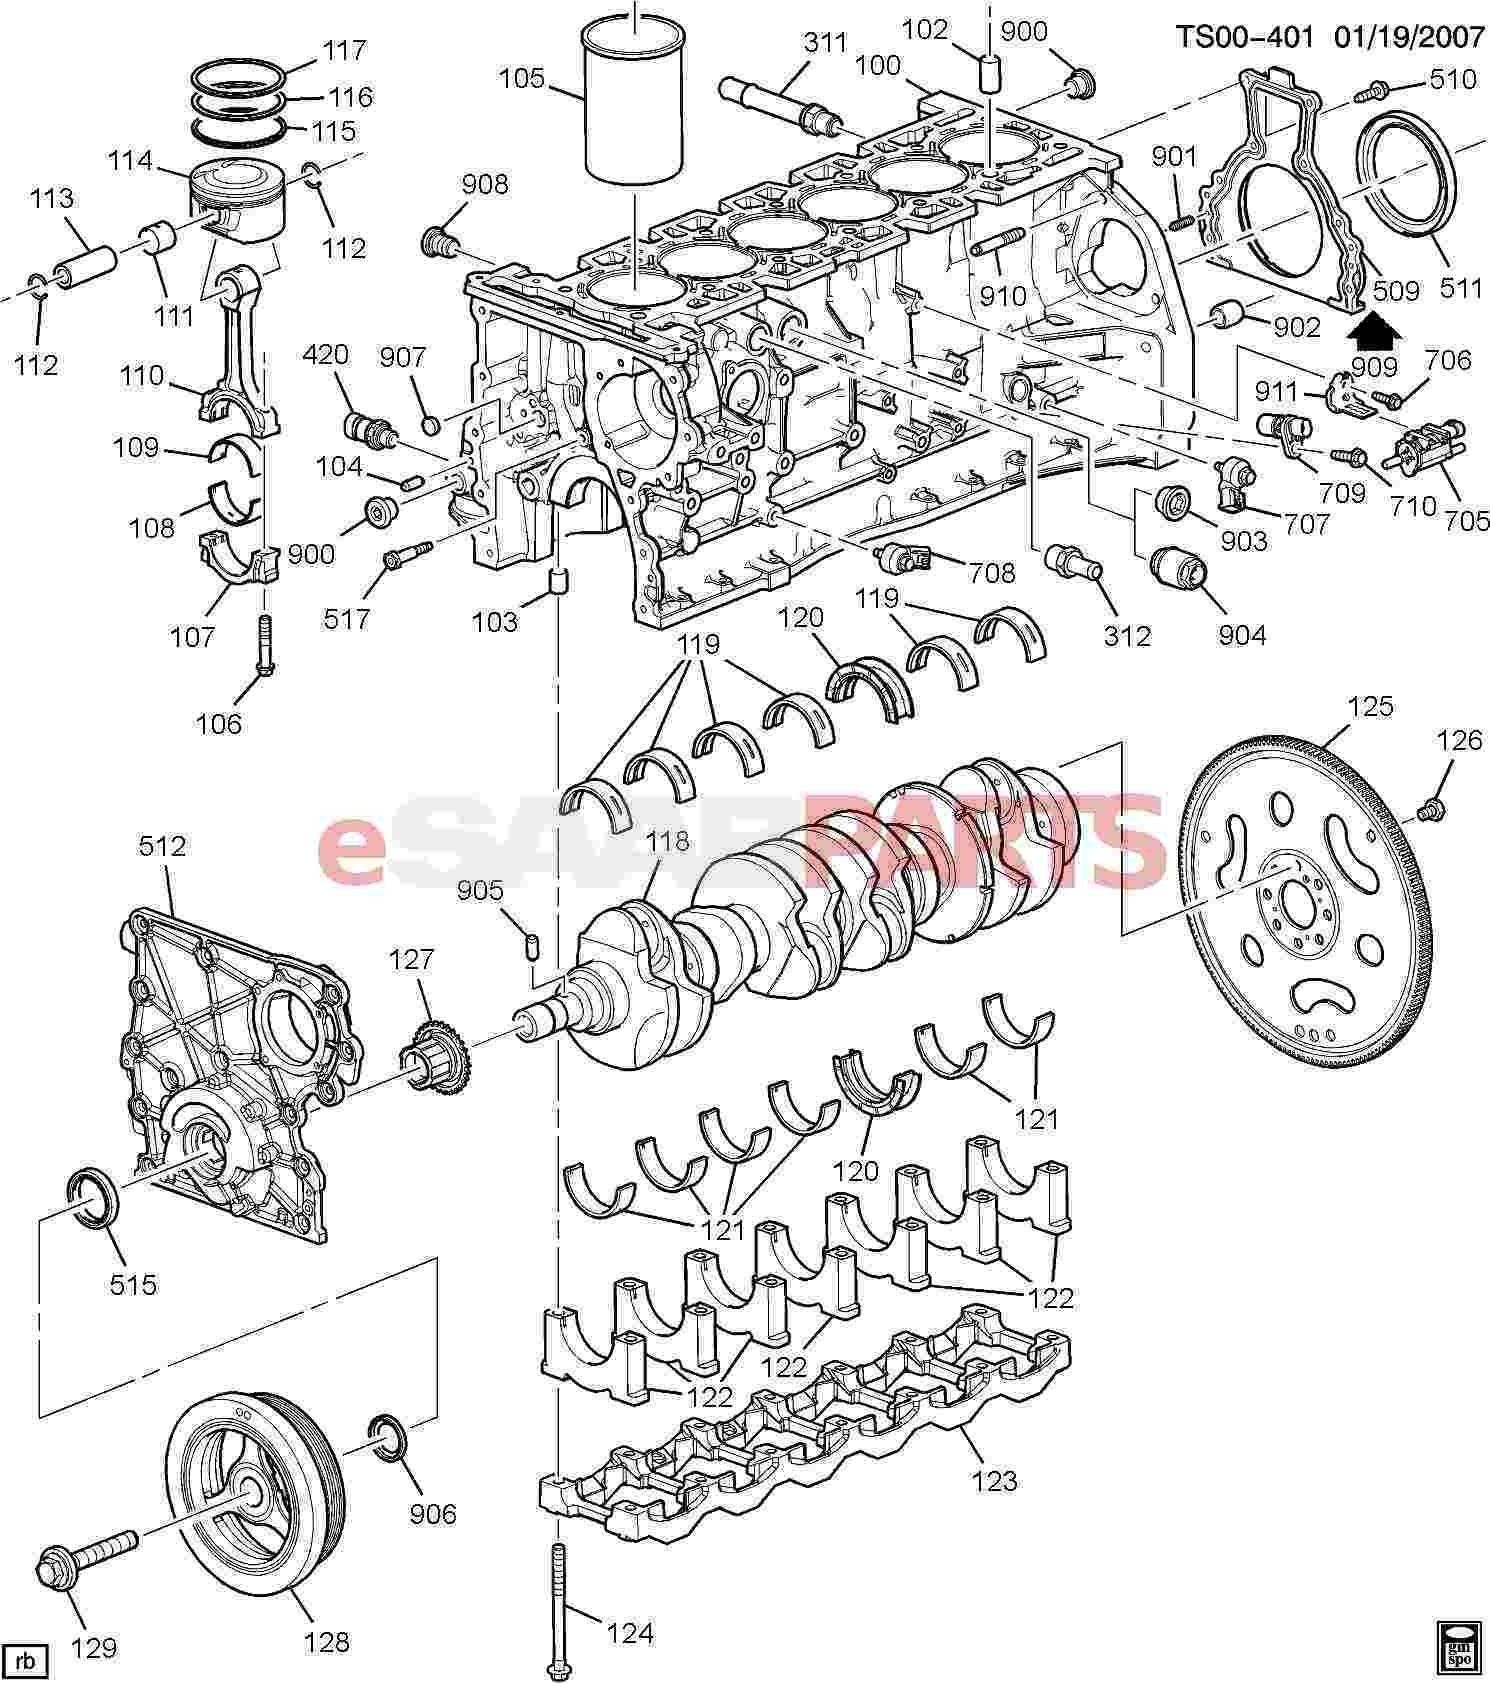 2003 Lincoln Ls V8 Engine Diagram 2003 Chevy Blazer Engine Diagram 2003 Chevy Blazer Engine Diagram Of 2003 Lincoln Ls V8 Engine Diagram Fan Clutch 2002 Lincoln Ls Parts Diagram Wiring Diagram Services •